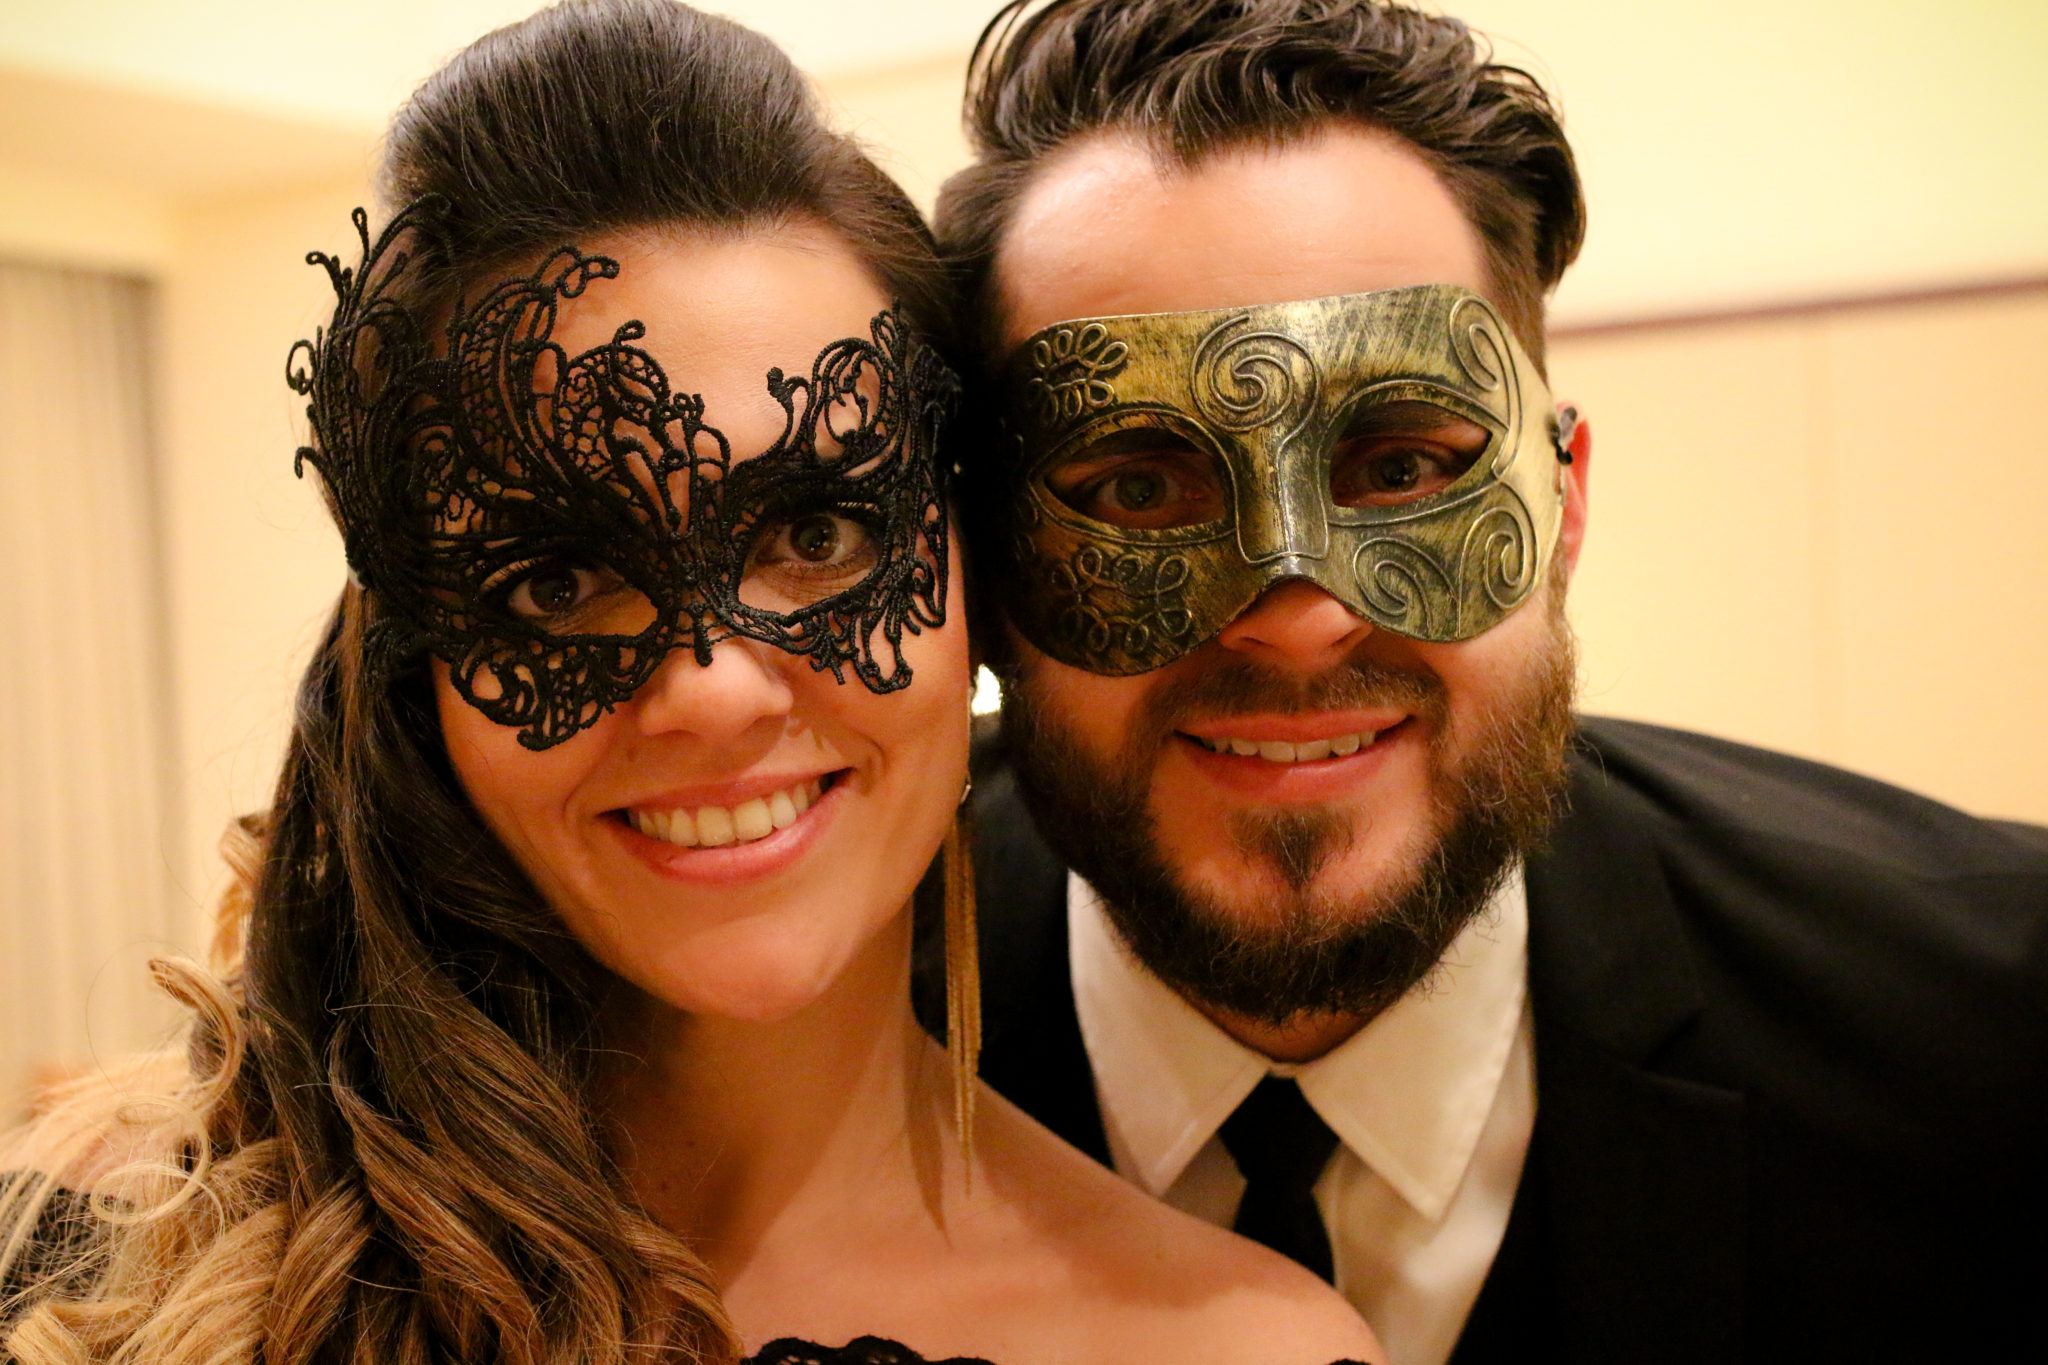 a4e95454db73f Masquerade Winter Gala QISS - Travelin' with JC